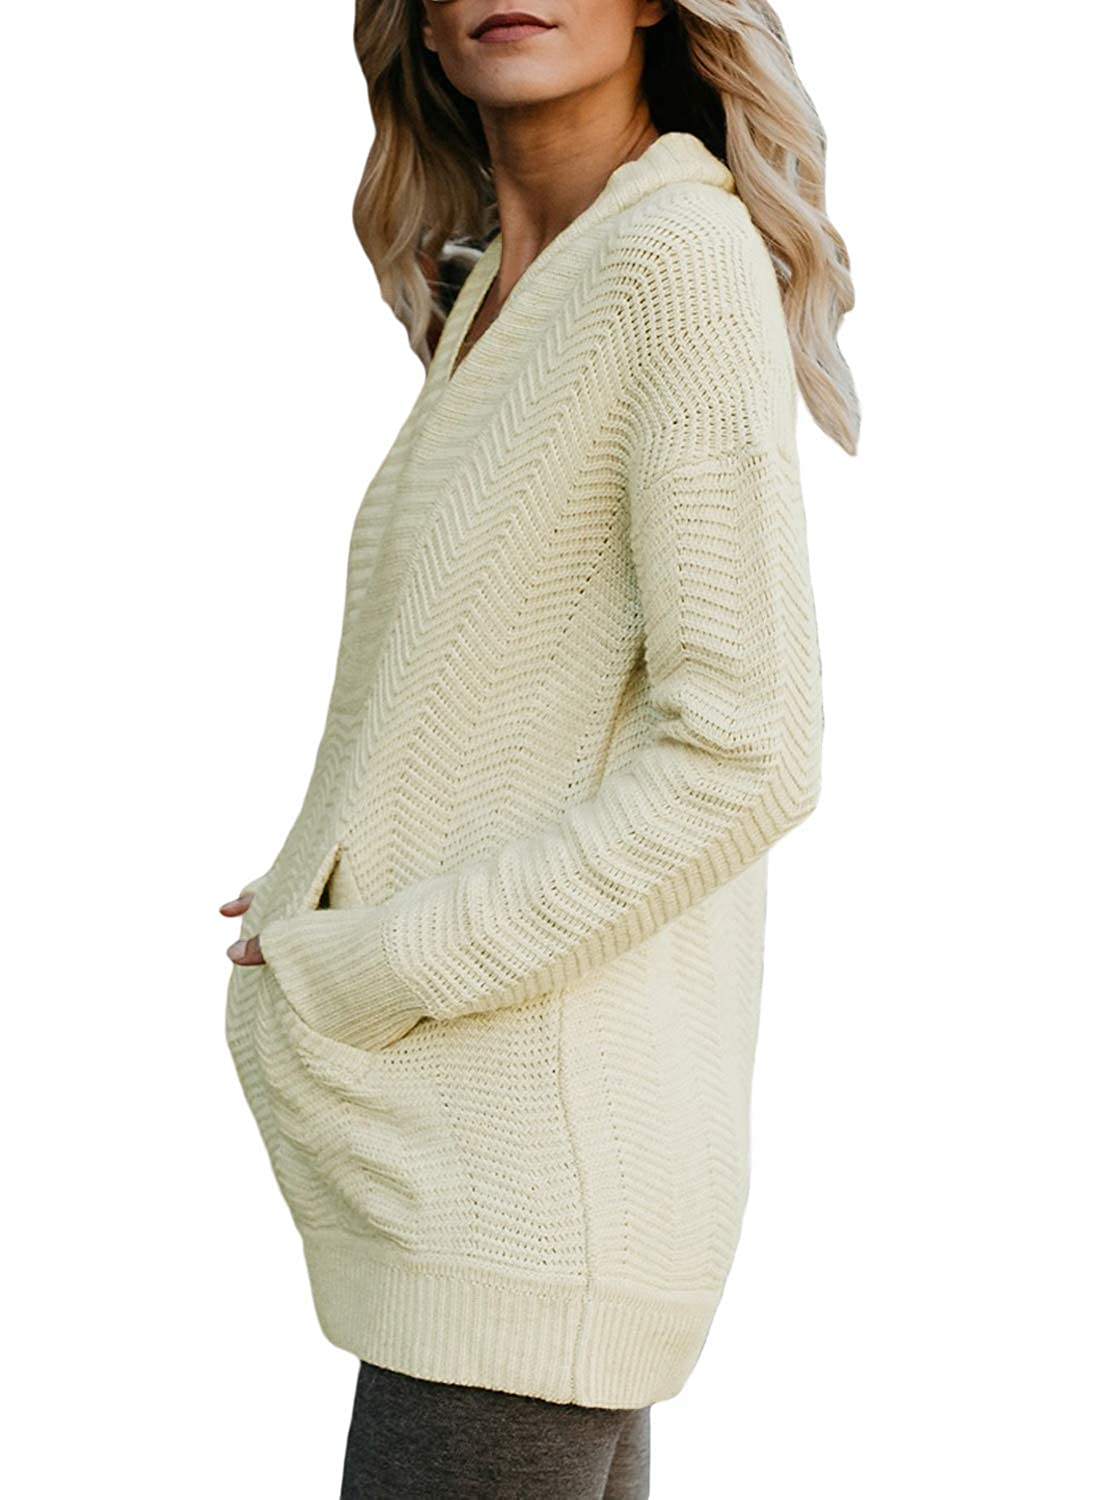 LOSRLY Womens V Neck Fold Over Collar Pullover Sweaters with Kangaroo Pocket